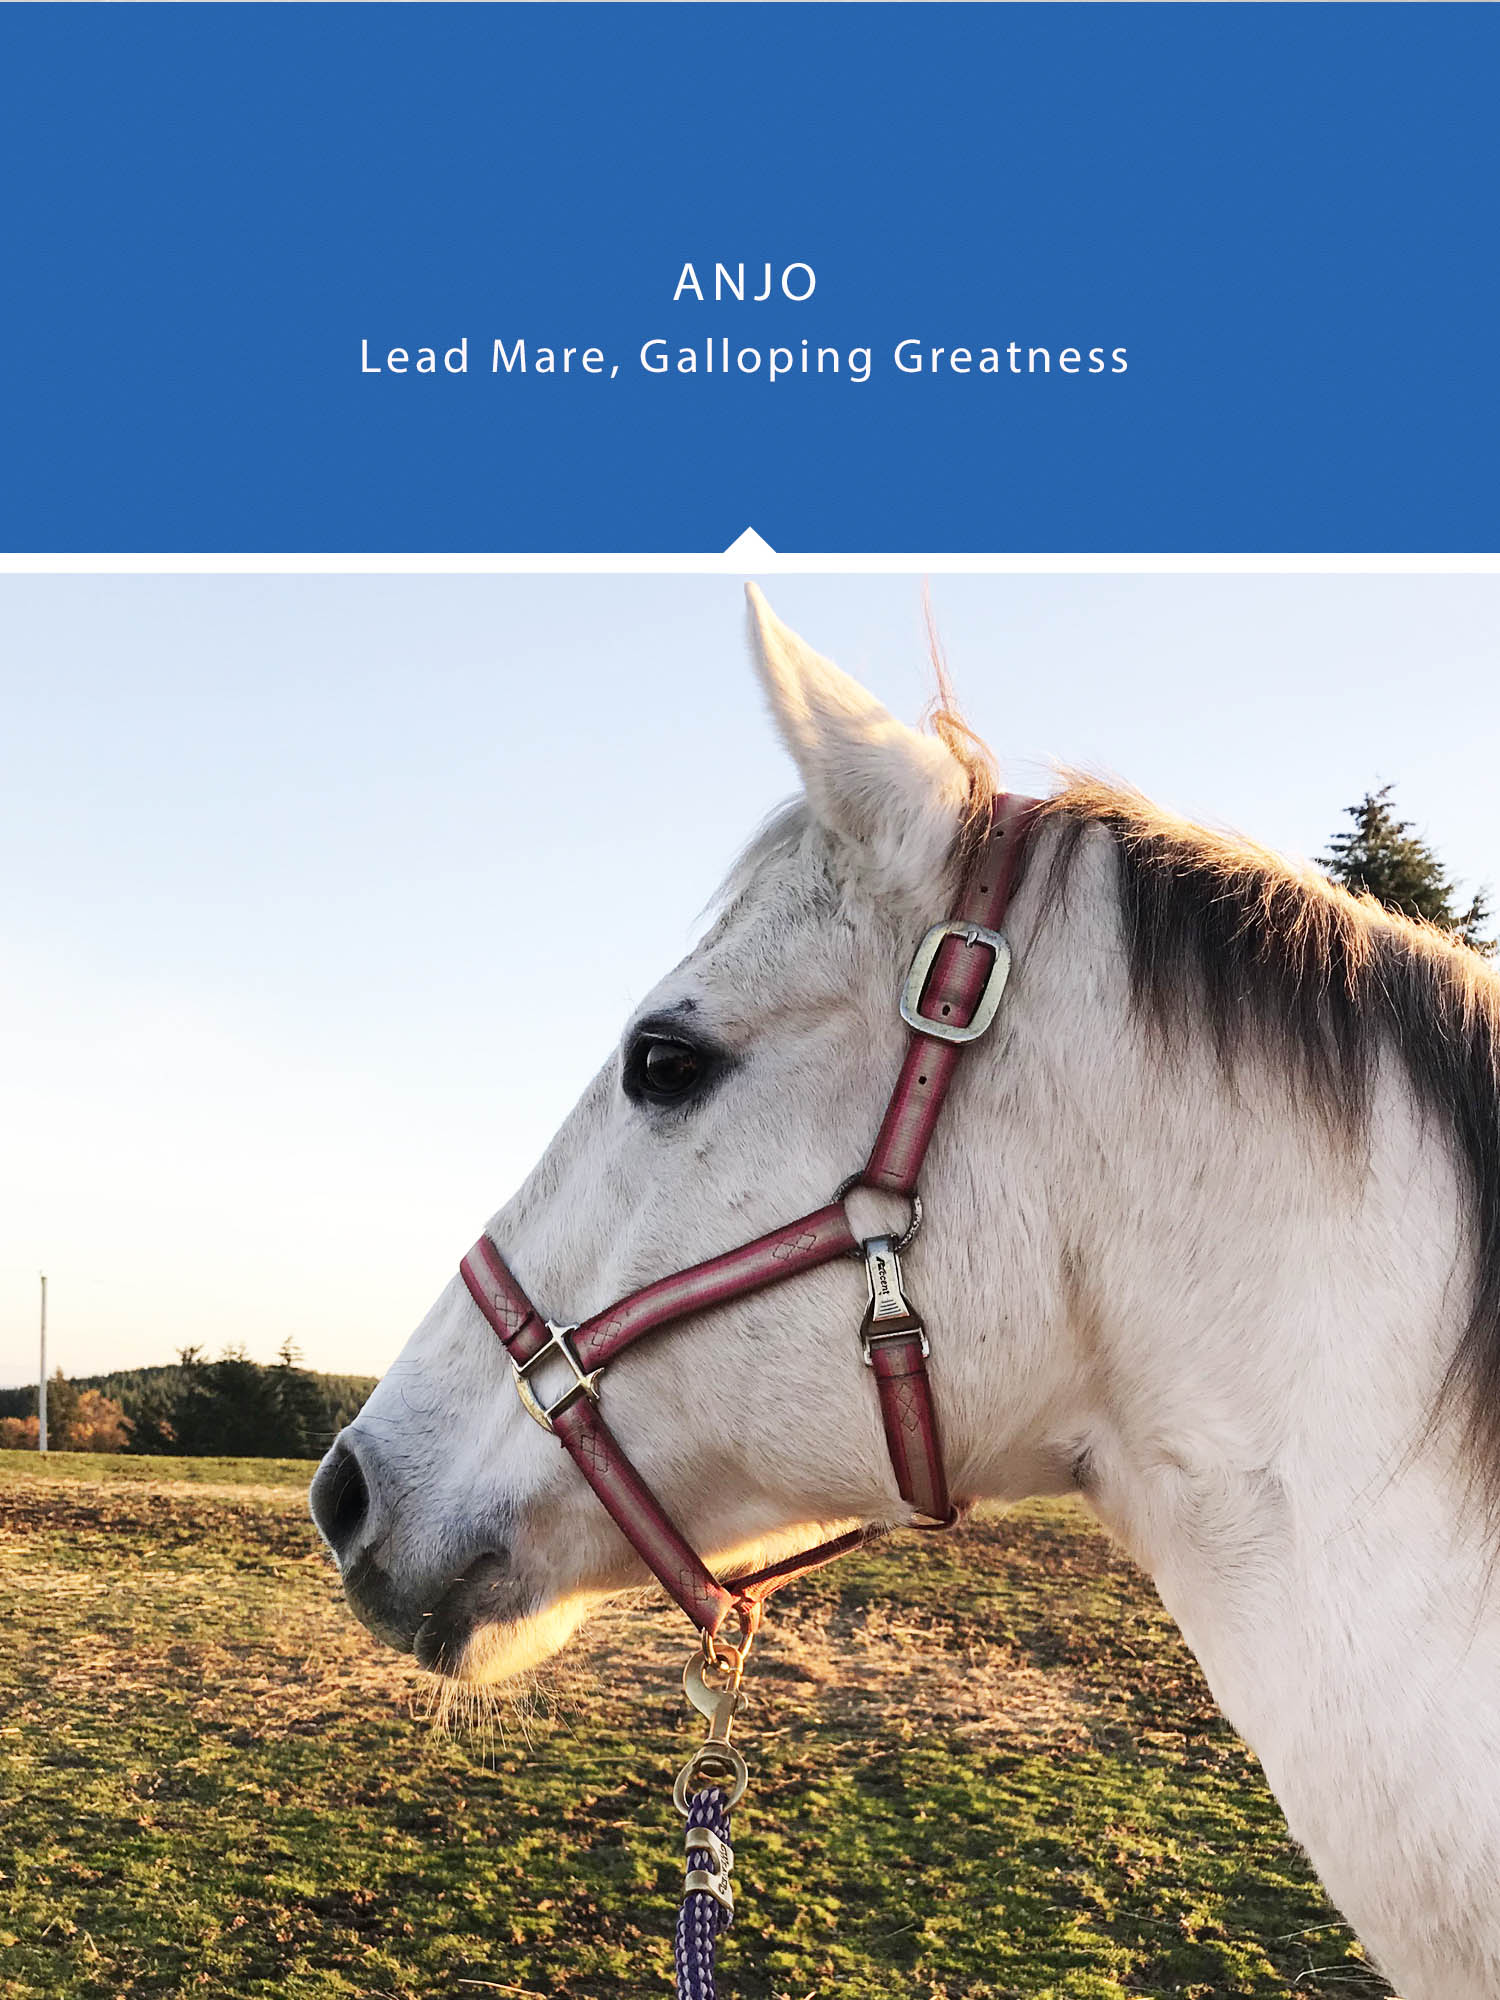 Anjo , lead mare, galloping greatness